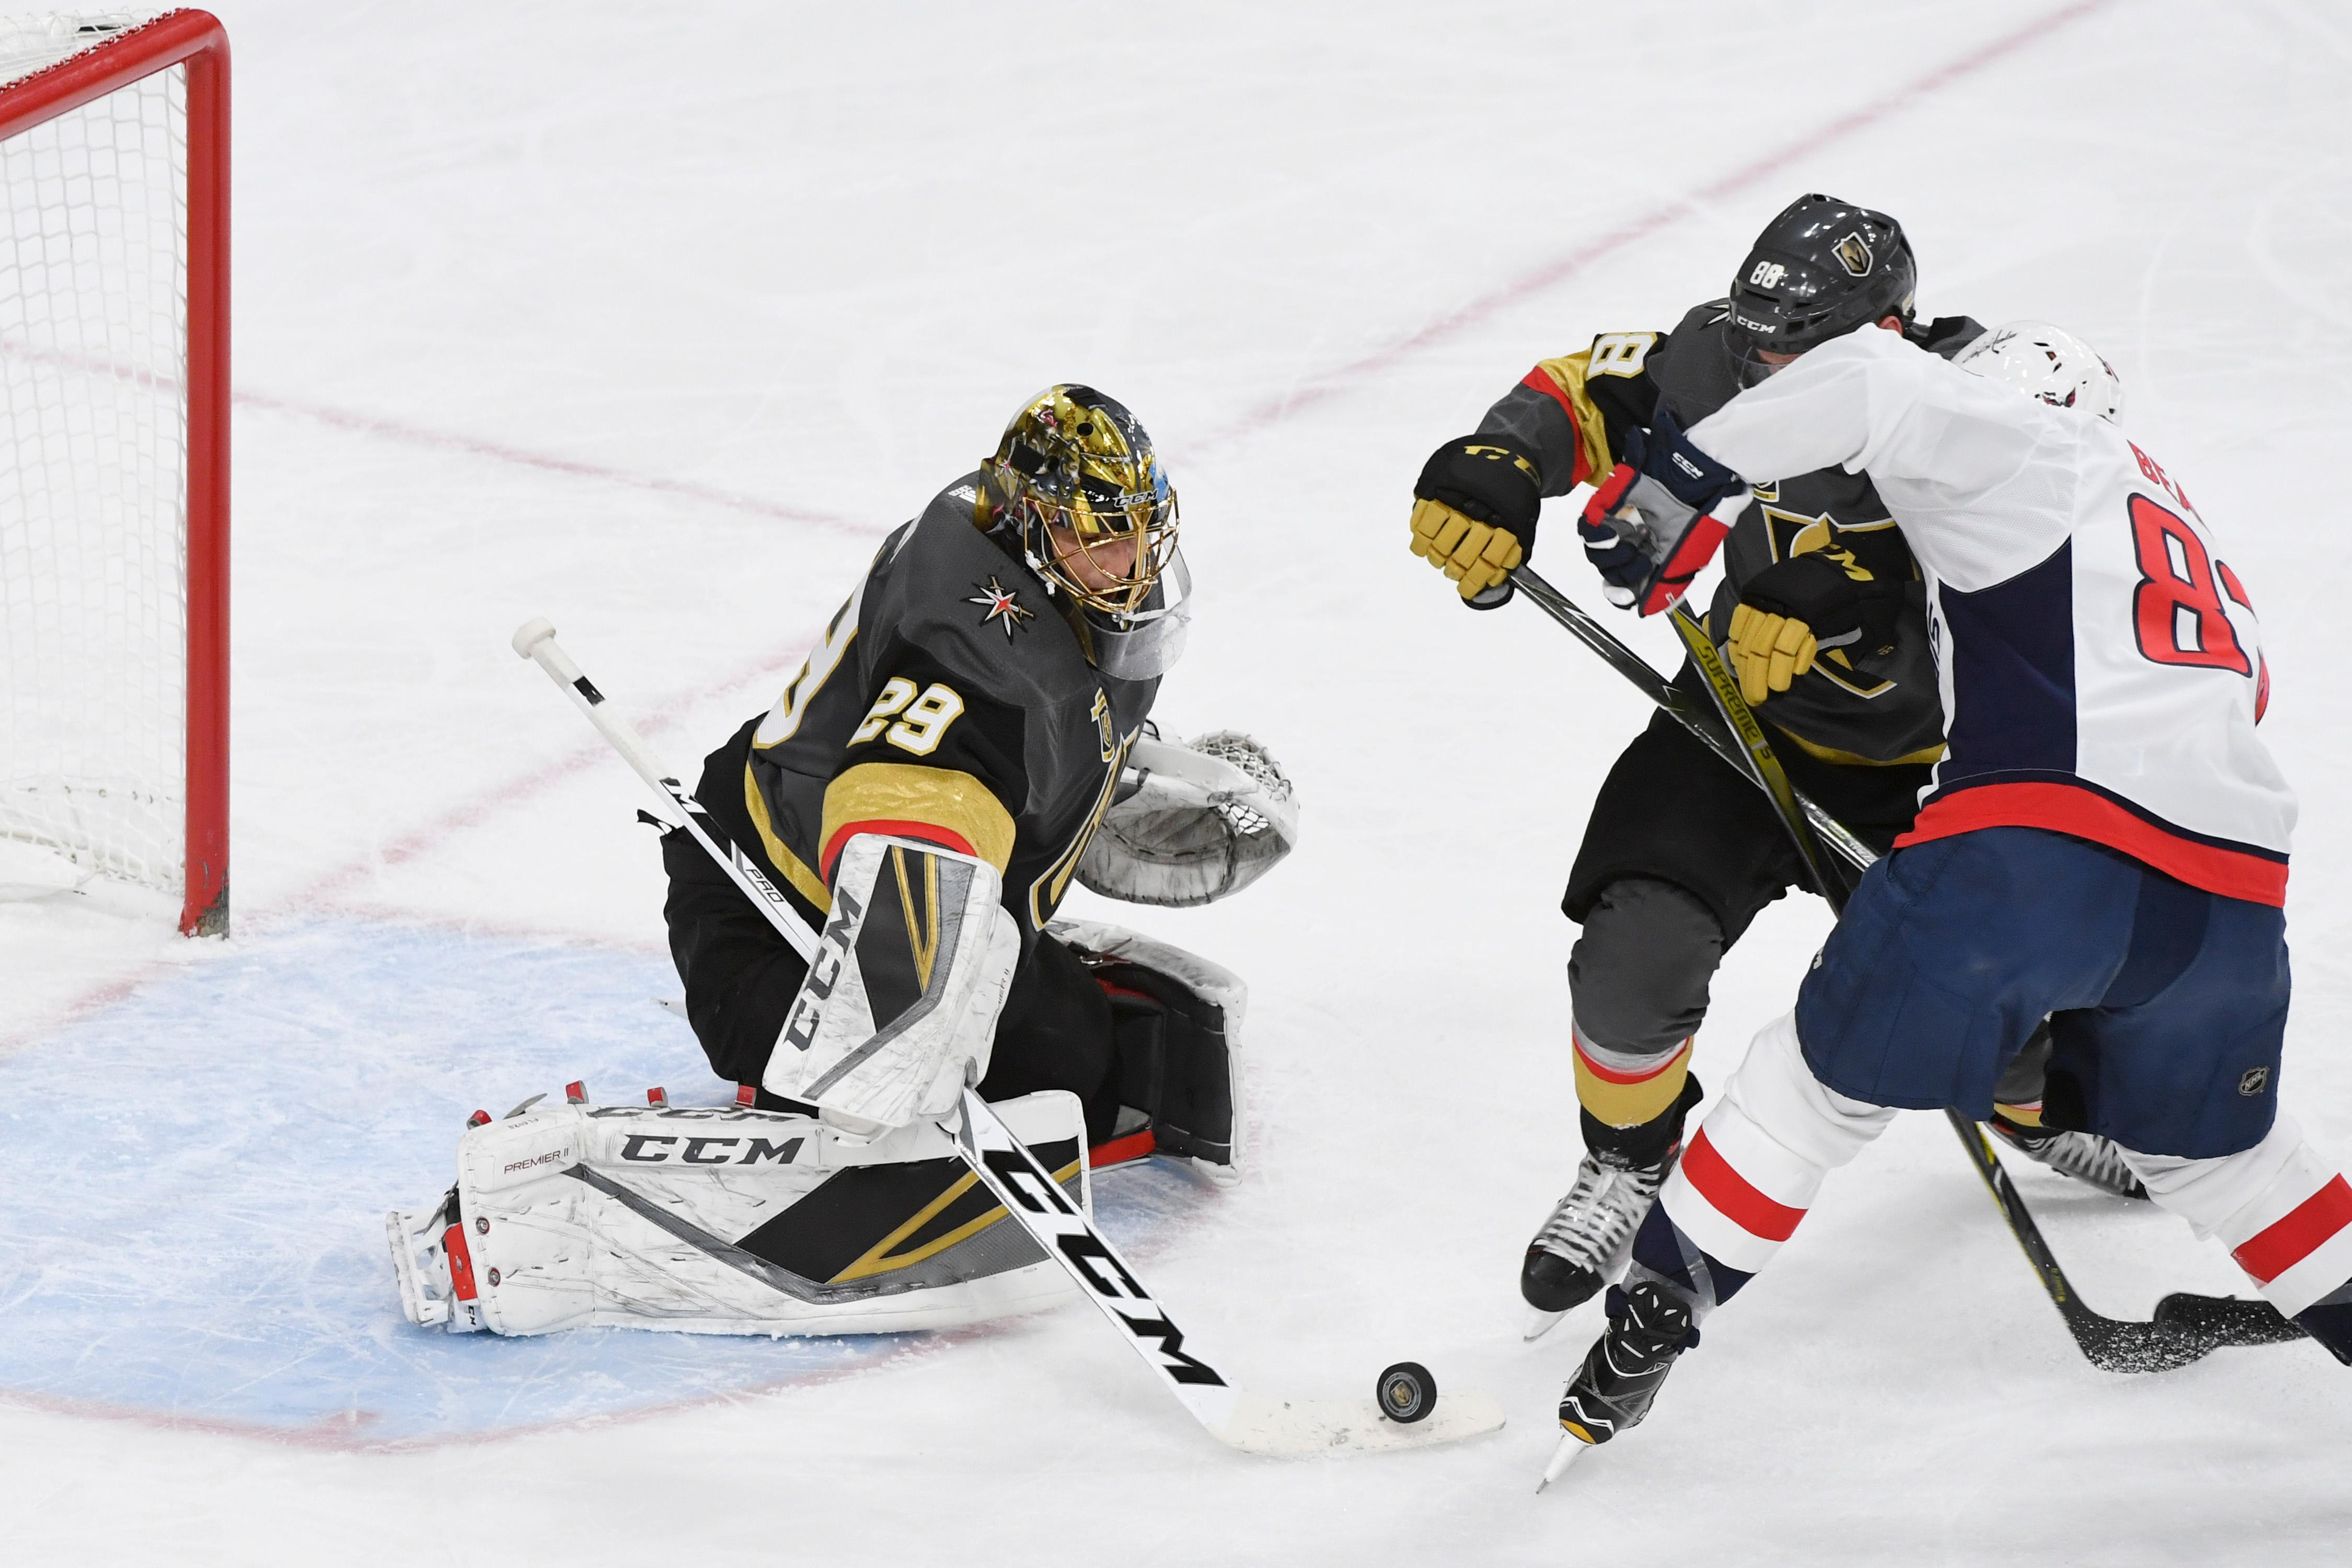 Vegas Golden Knights goalie Marc-Andre Fleury (29) stops a shot by Washington Capitals center Jay Beagle (83) during their NHL hockey game Saturday, December 23, 2017, at T-Mobile Arena in Las Vegas.  CREDIT: Sam Morris/Las Vegas News Bureau